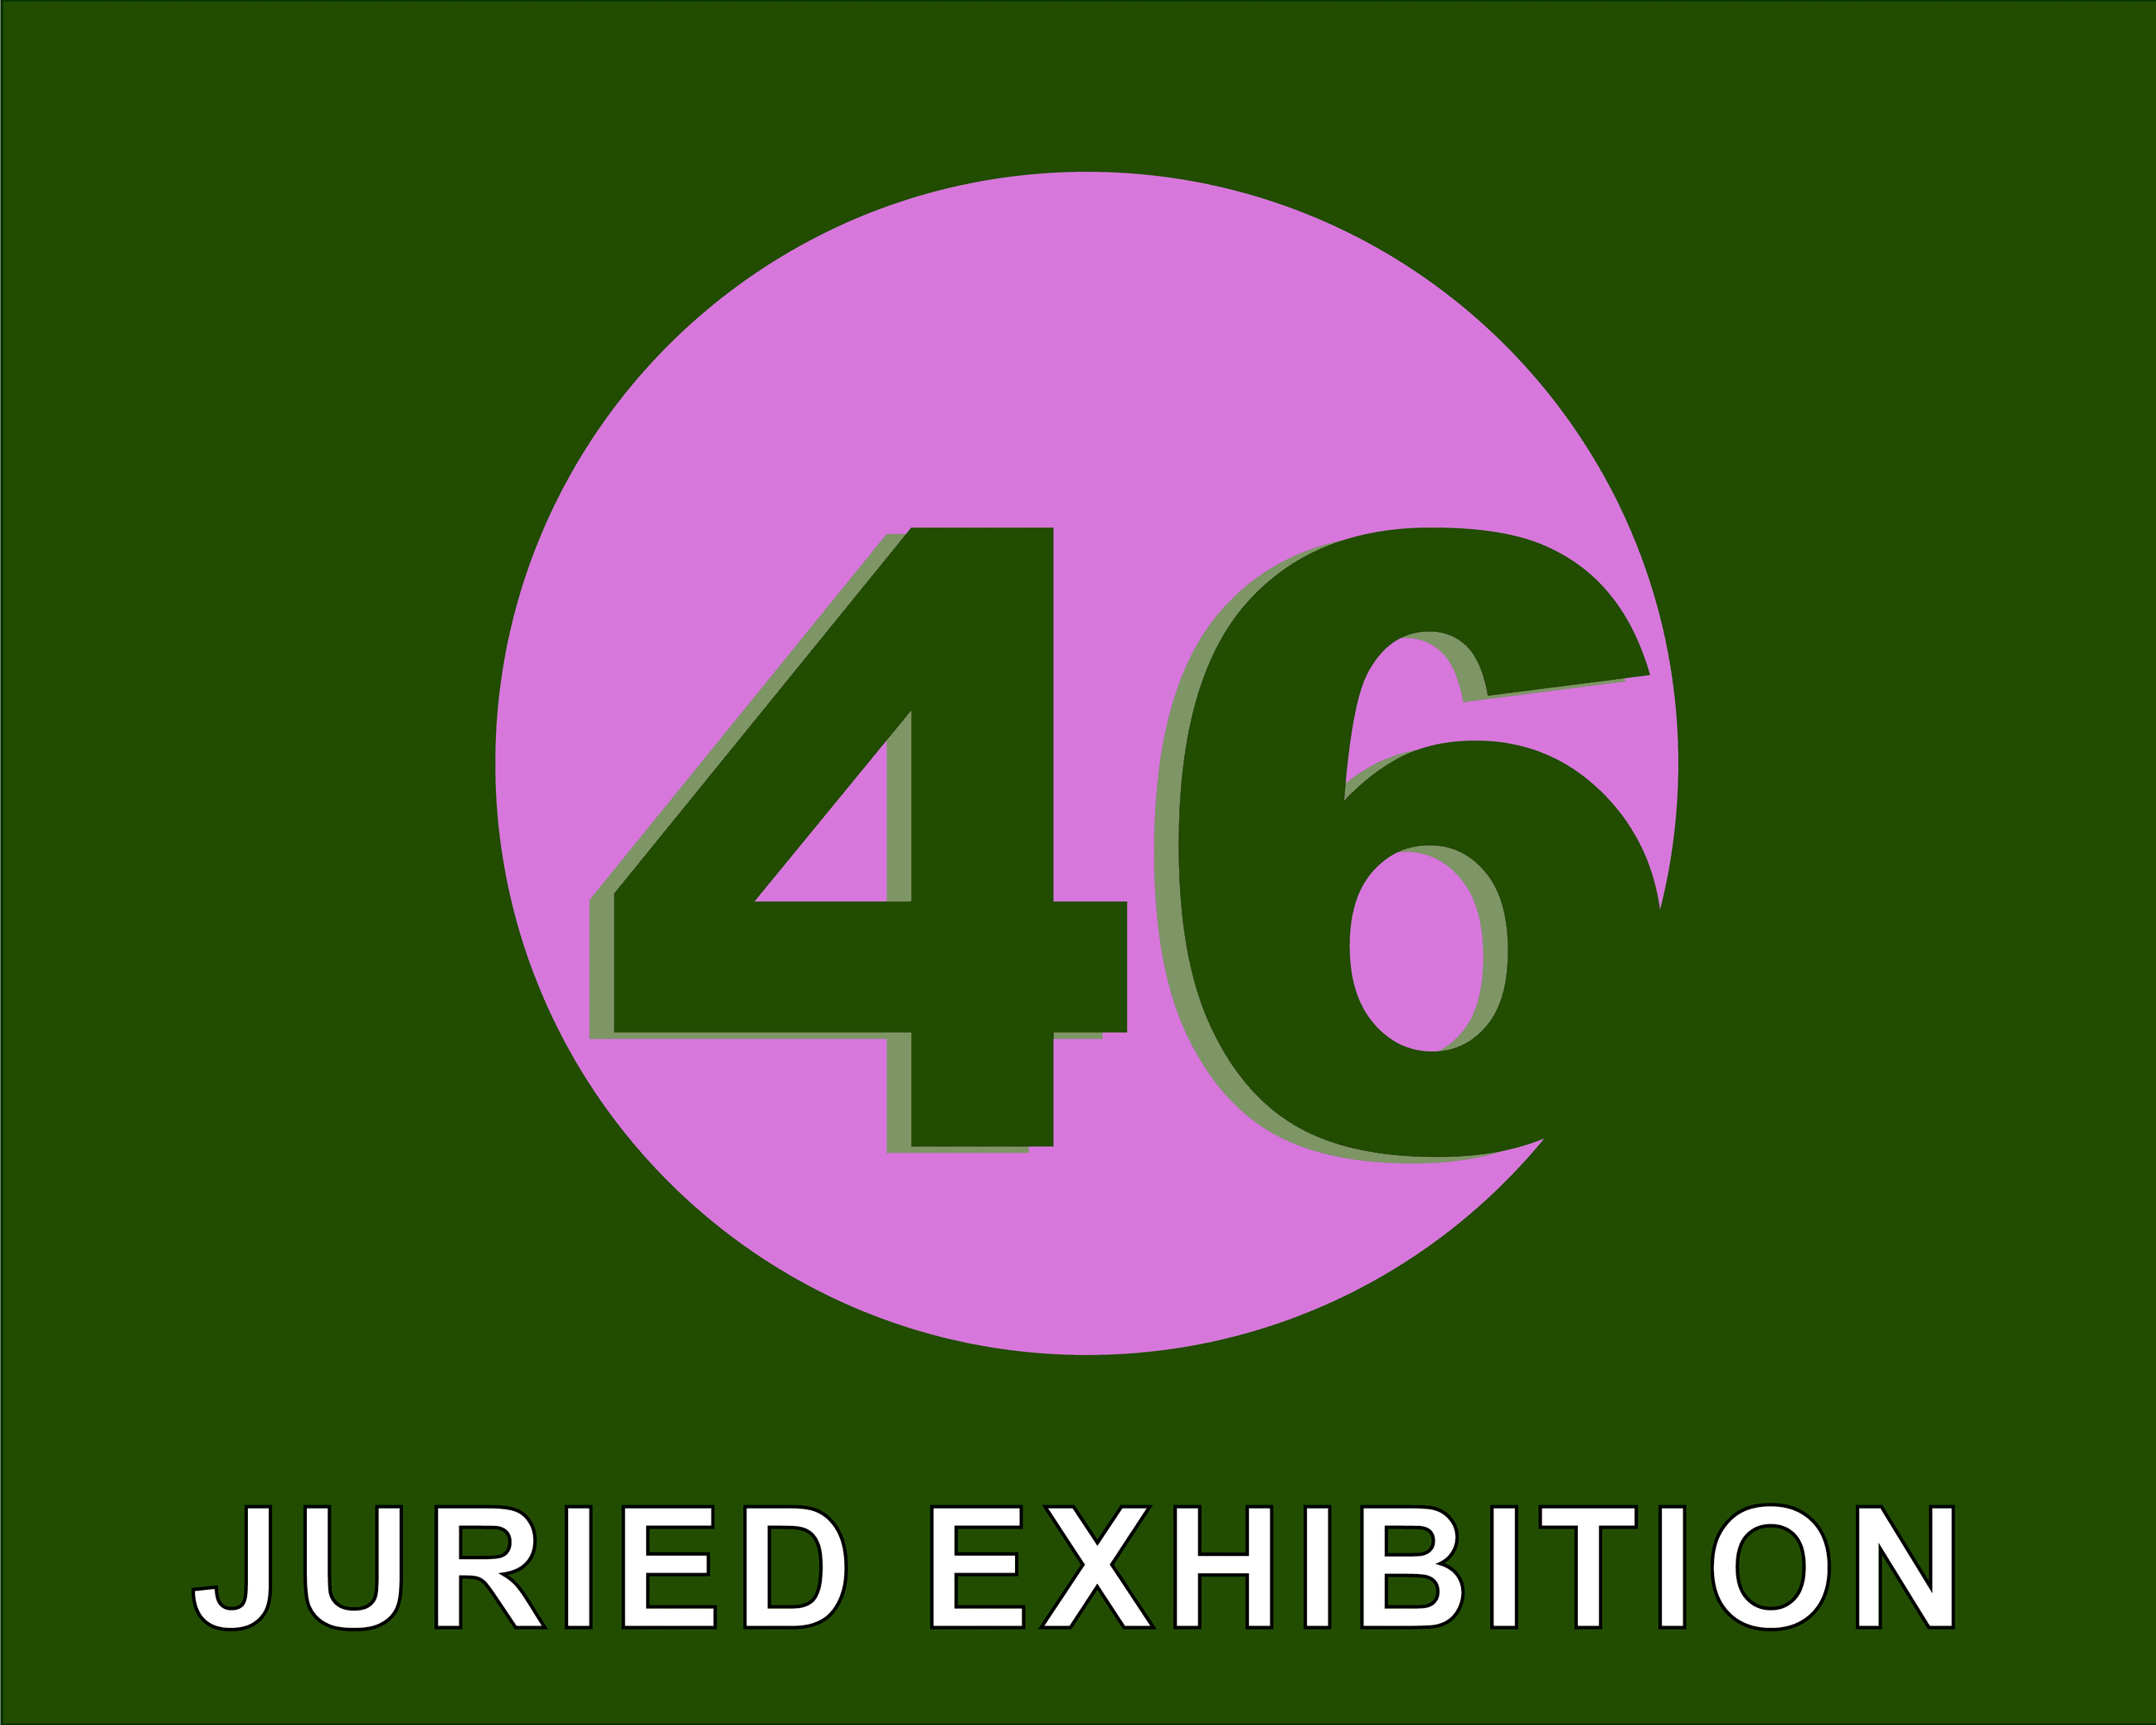 46 Juried, centered-01